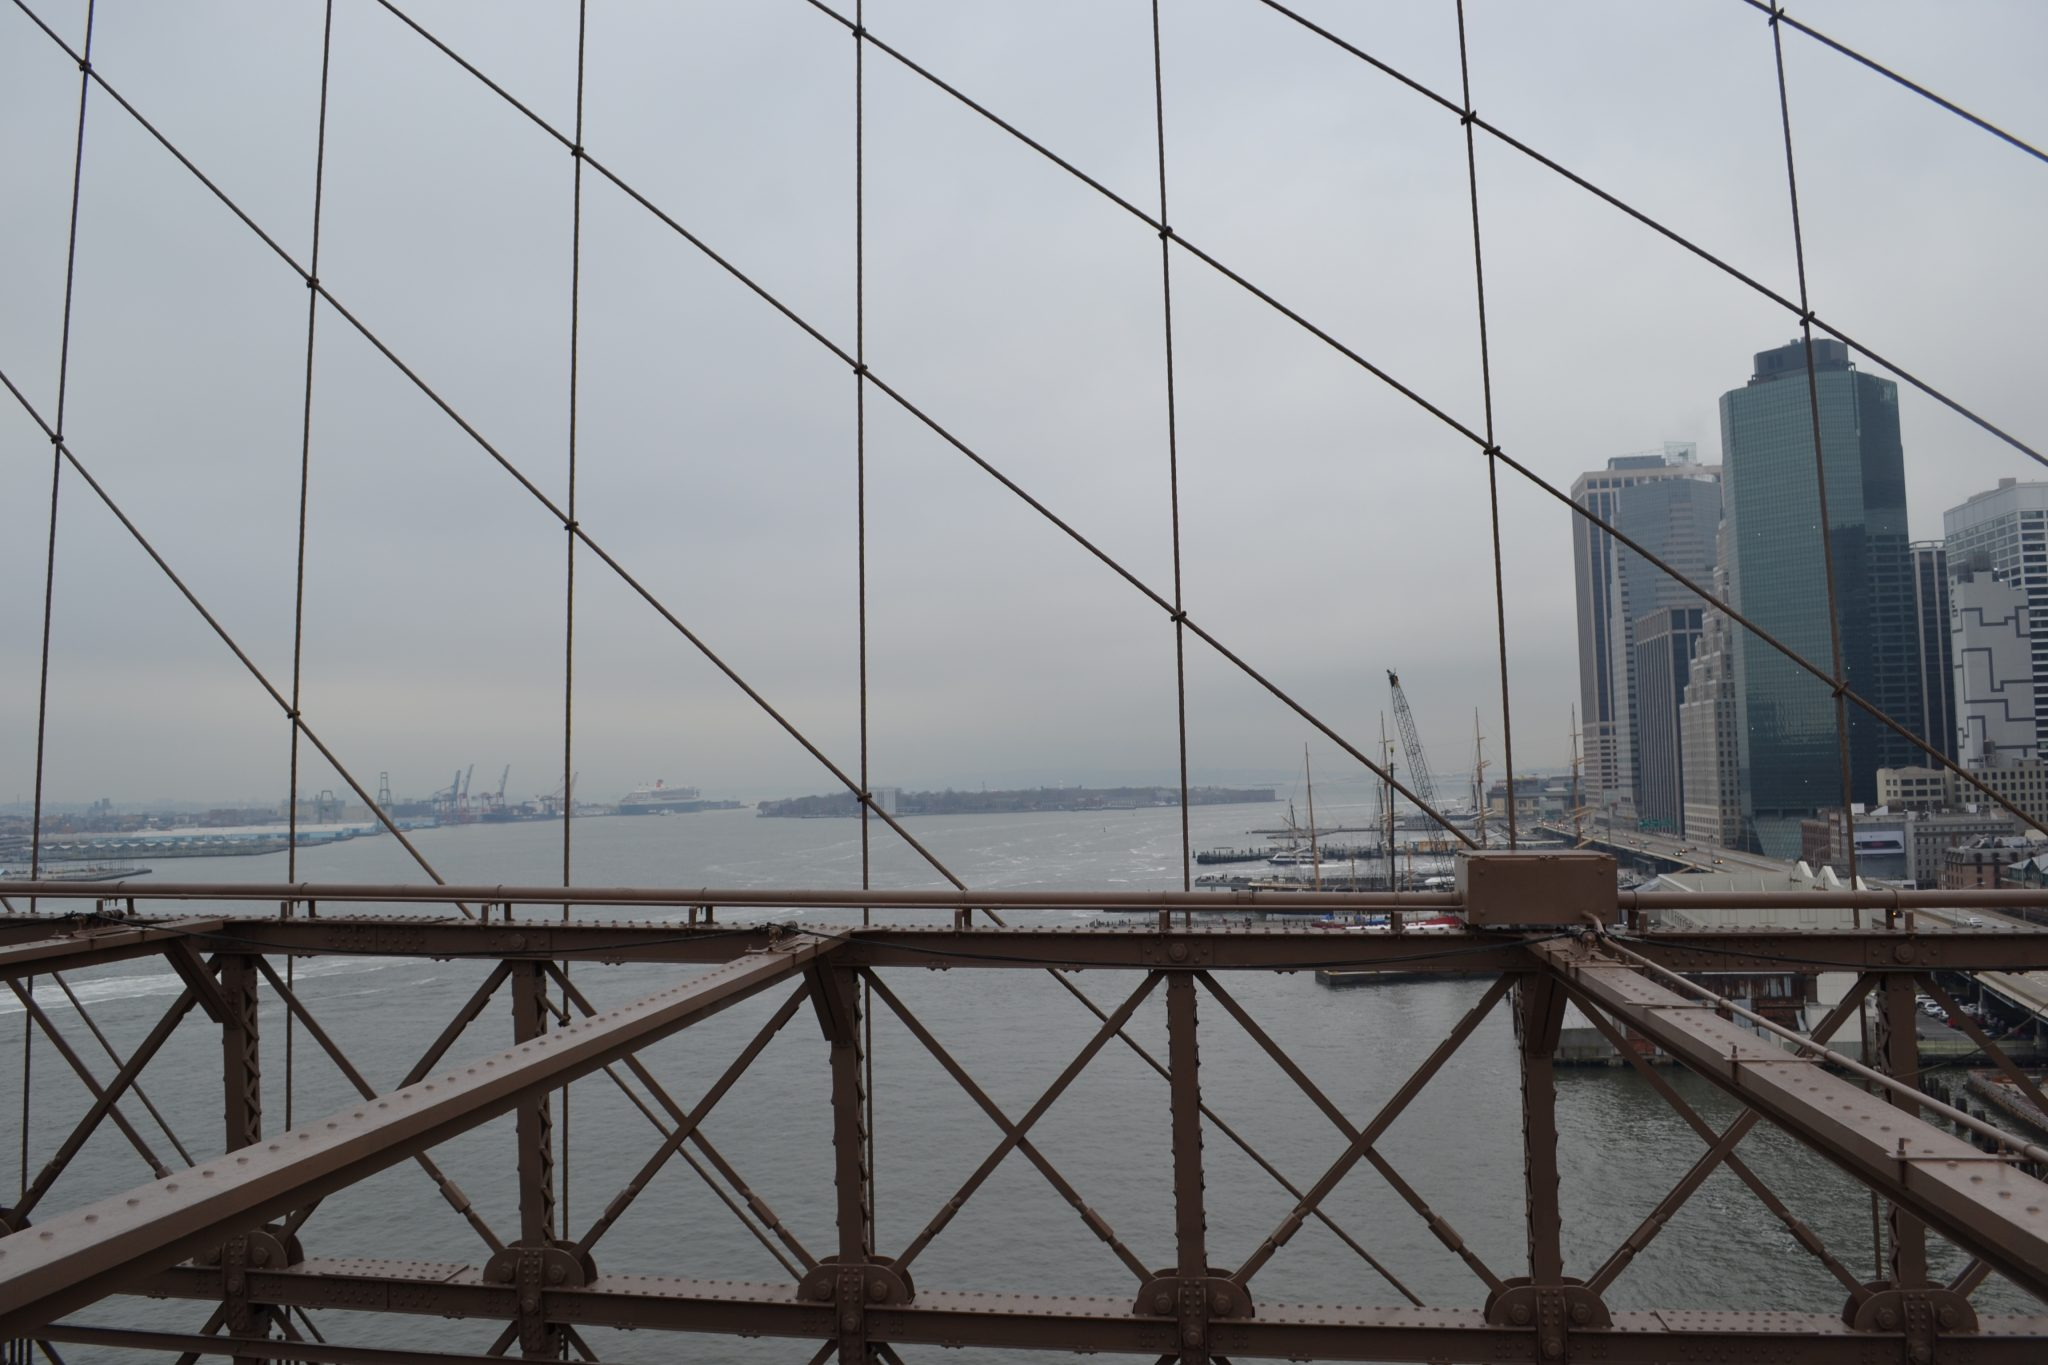 New York Part 6: Brooklyn Bridge & Citystore - dsc 0019